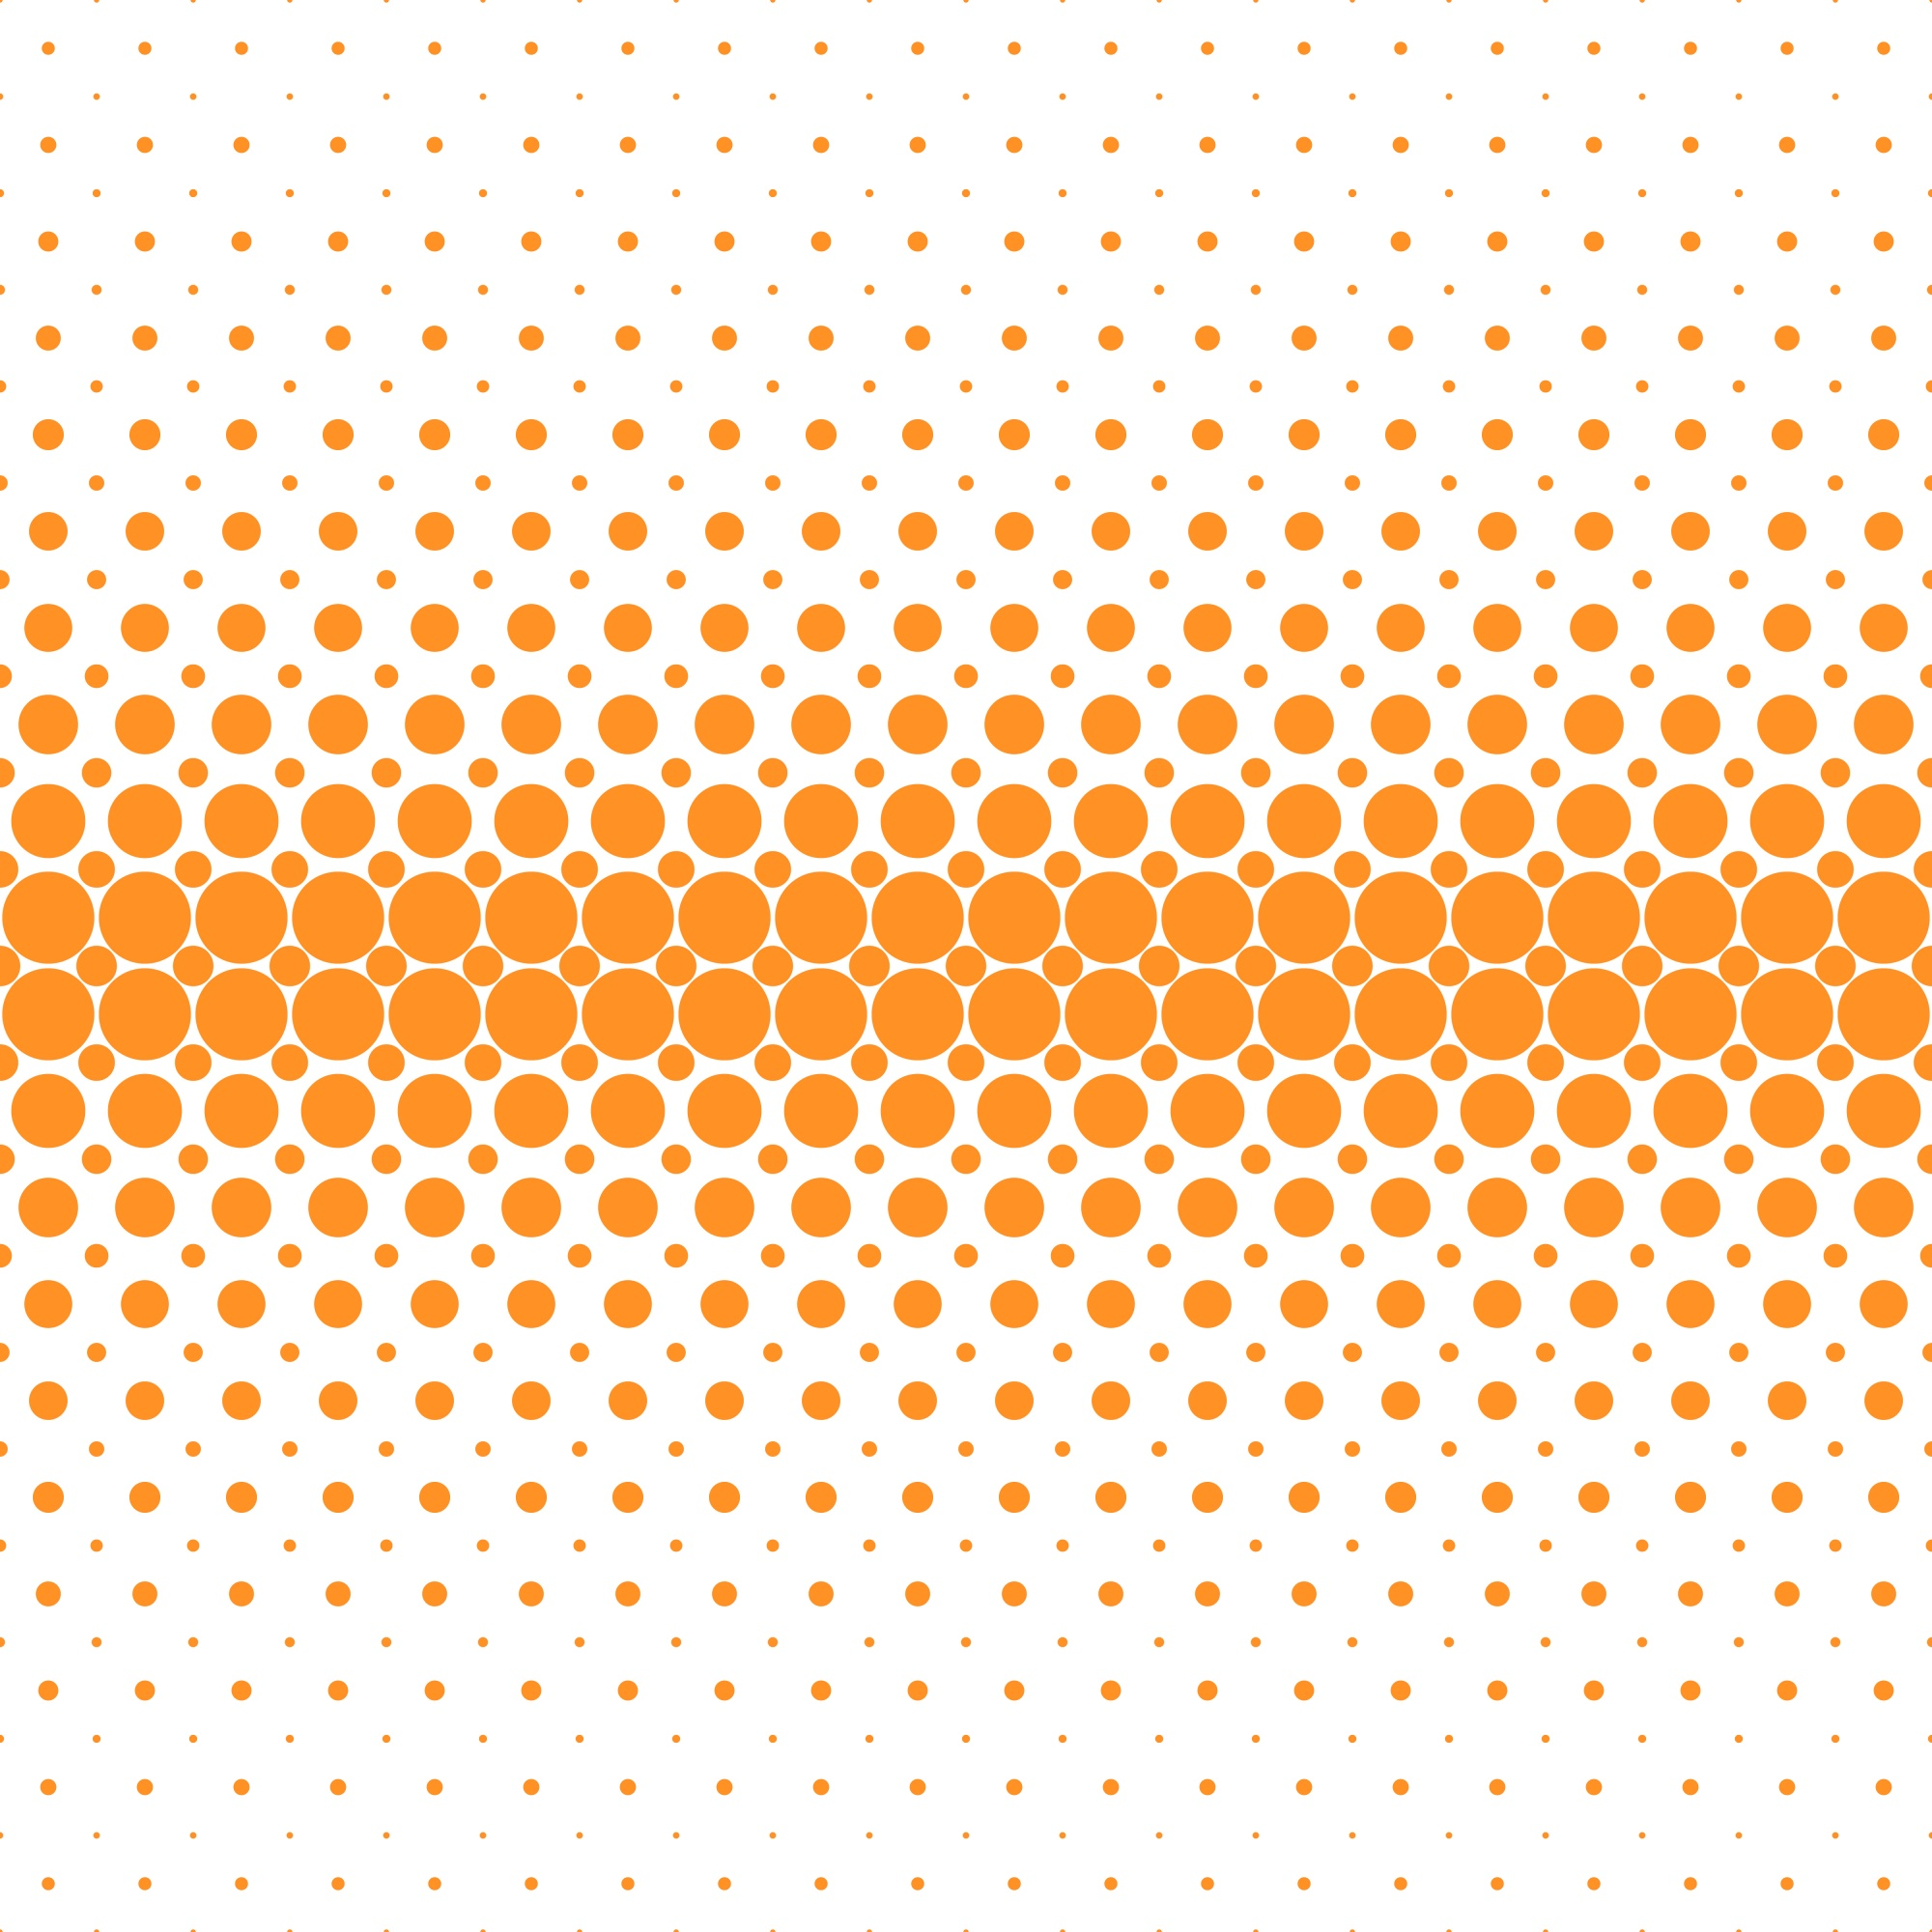 Abstract geometrical halftone dot pattern background - vector graphic from orange circles on white background